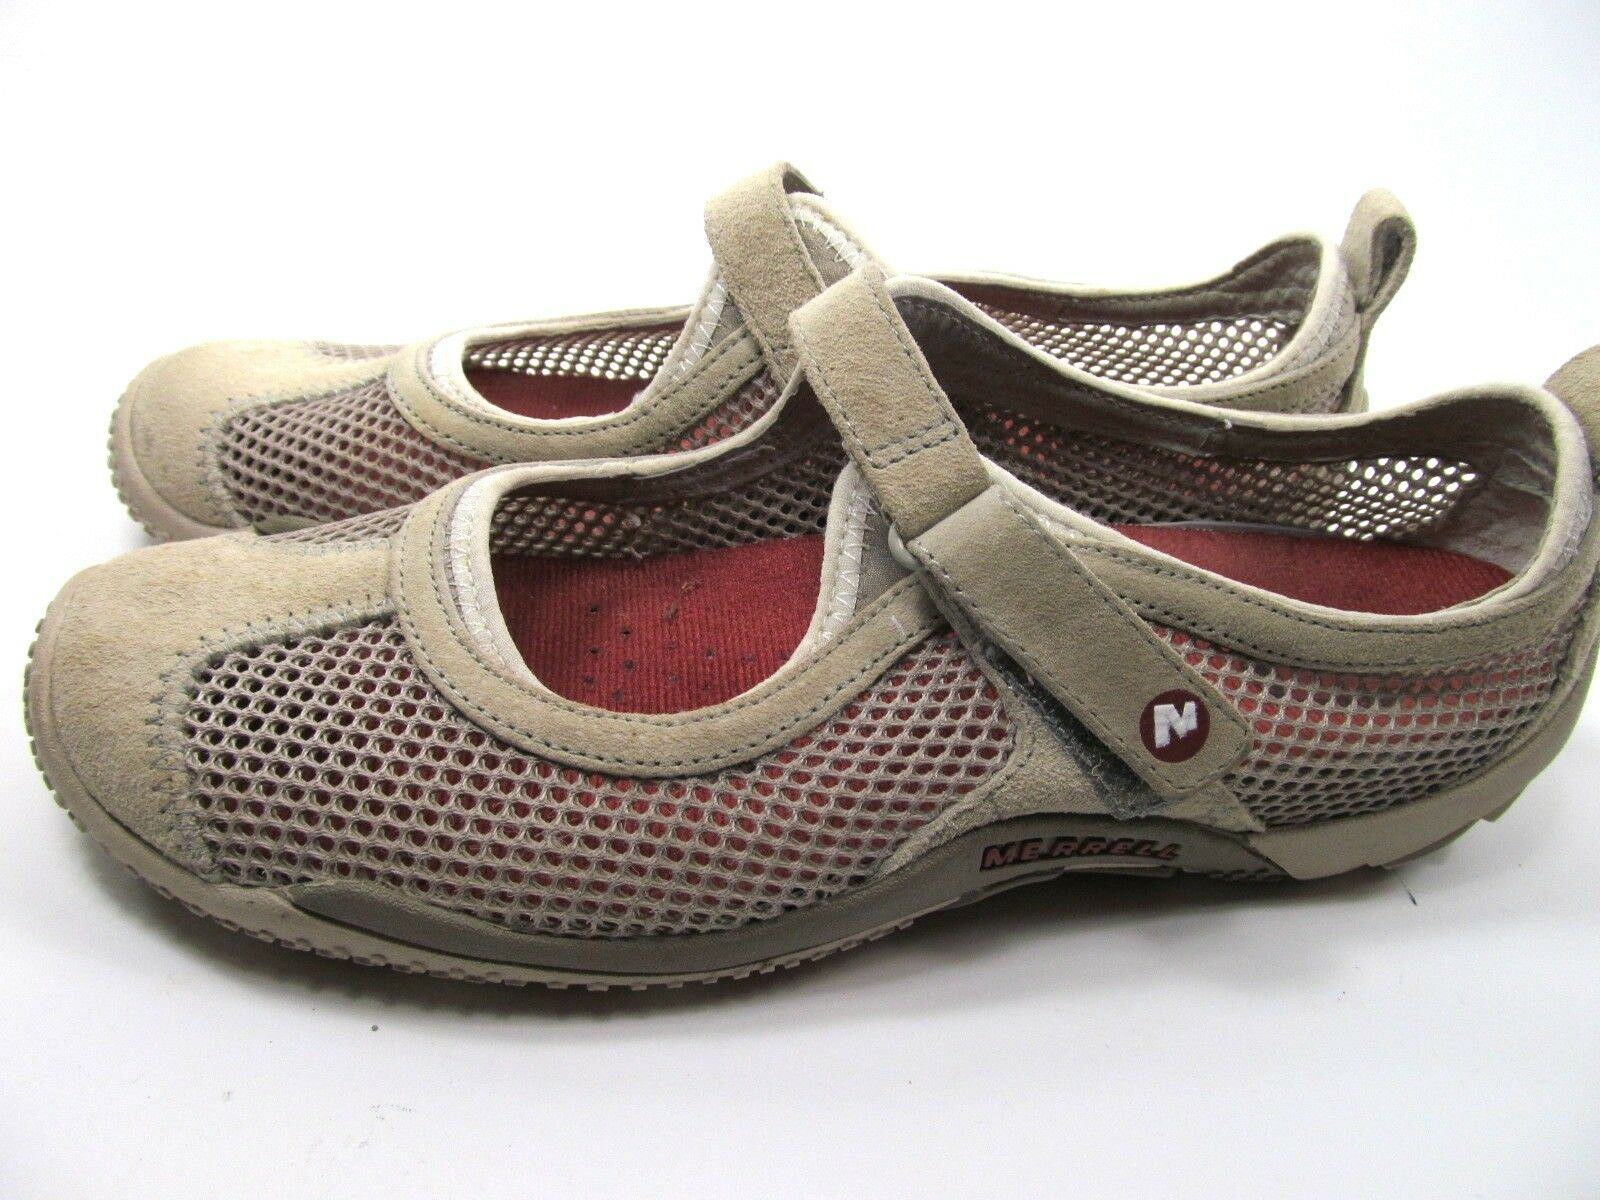 Merrell Taupe Womens Mesh Shoes Size 7.5 M Grey Suede Mary Jane Shoes image 4